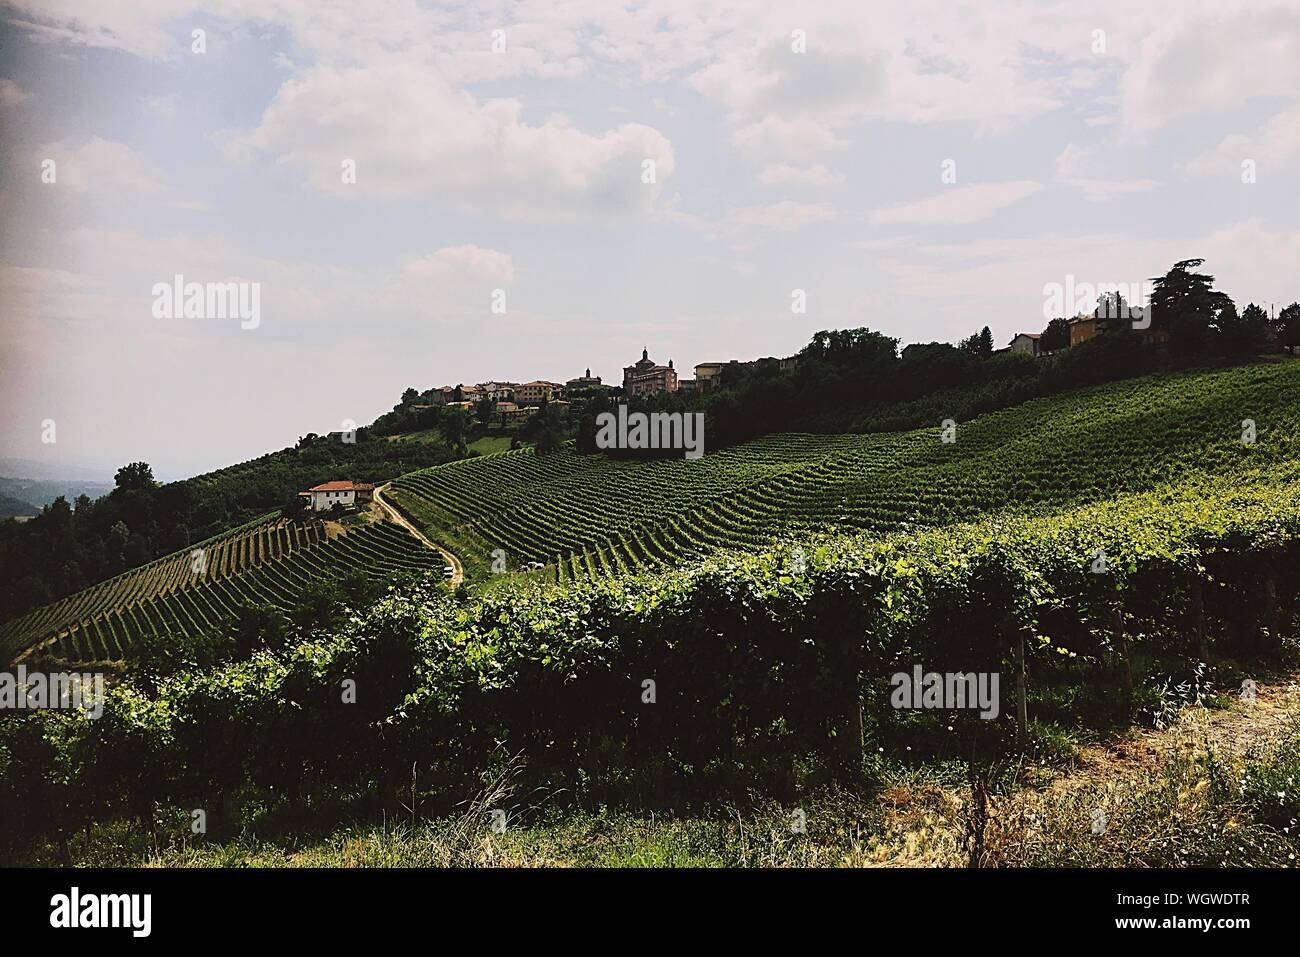 Scenic View Of Field Against Cloudy Sky Stock Photo